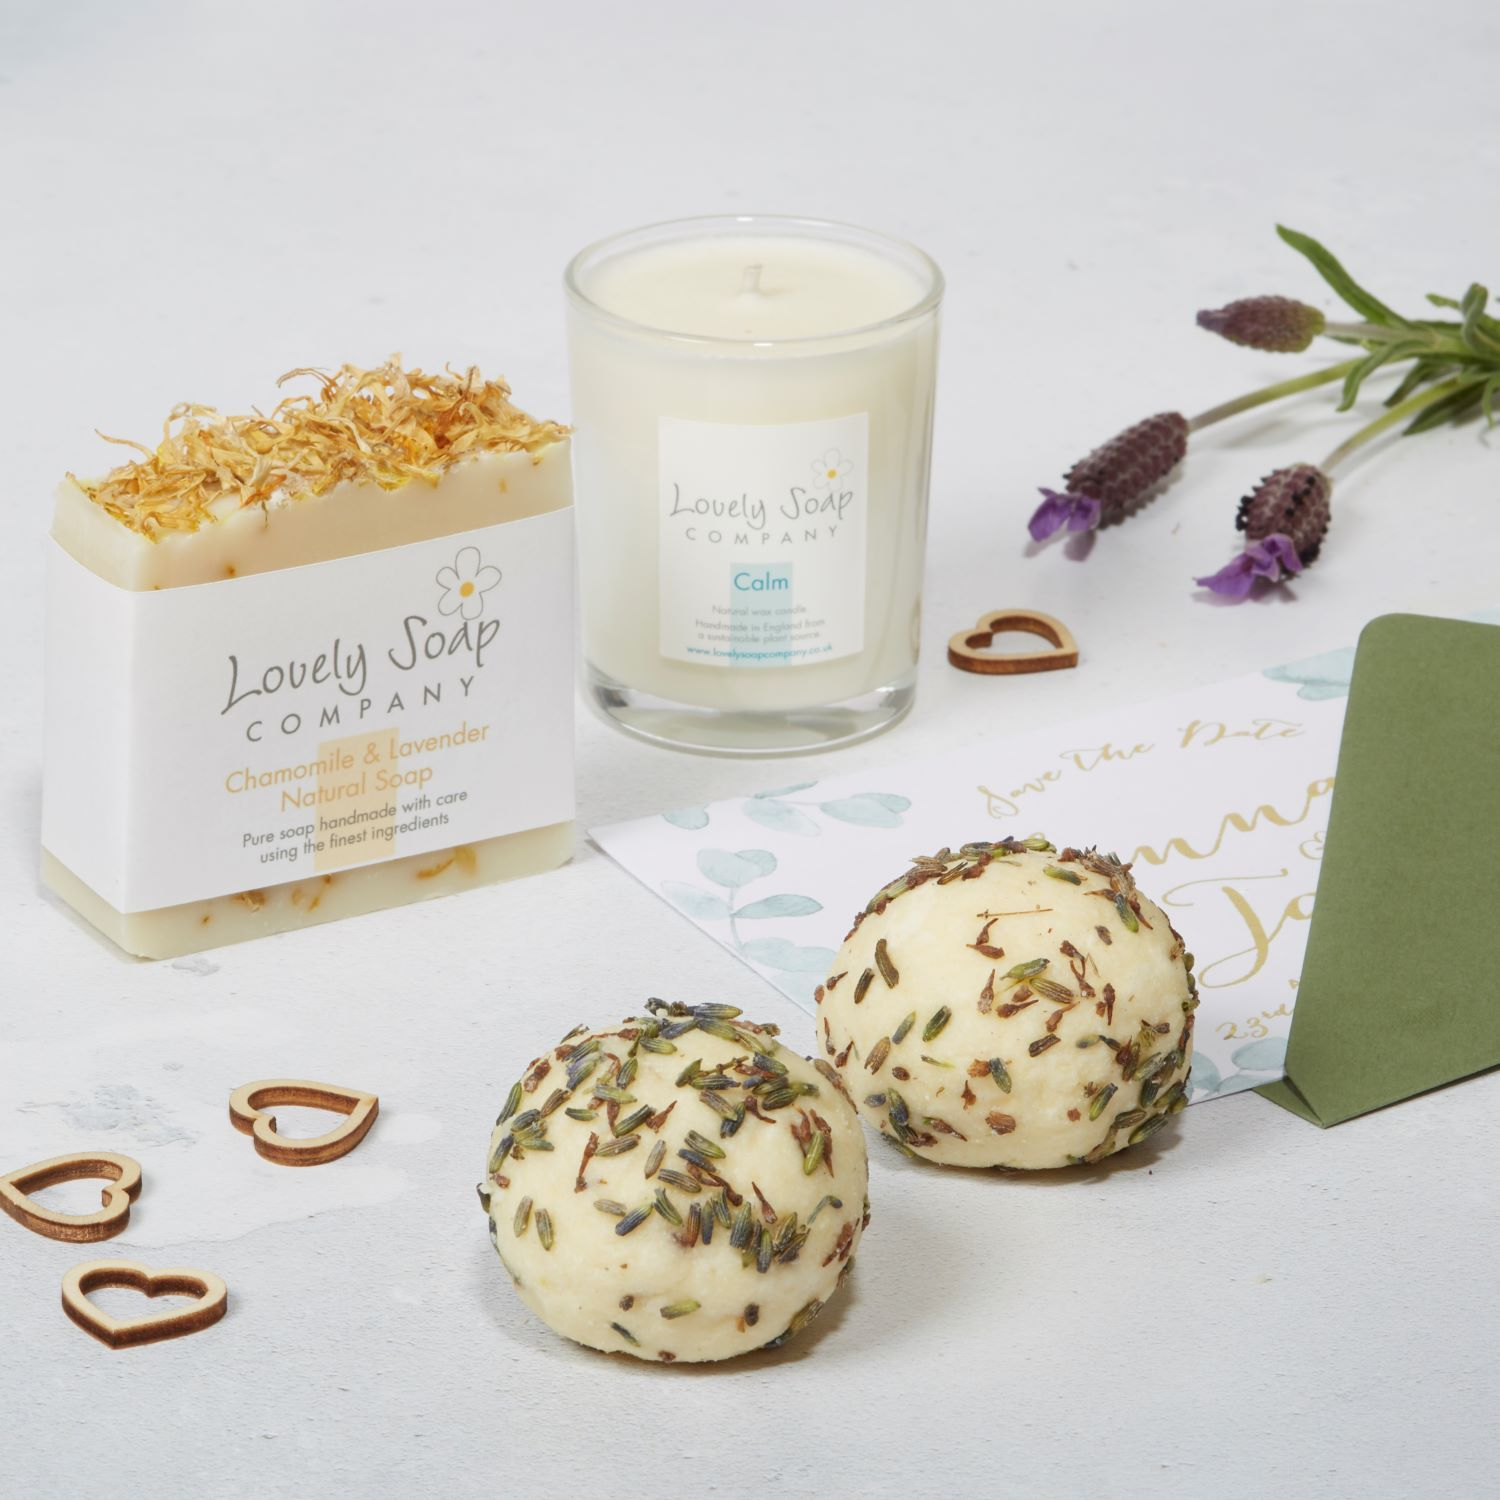 new bath products, wedding gifts